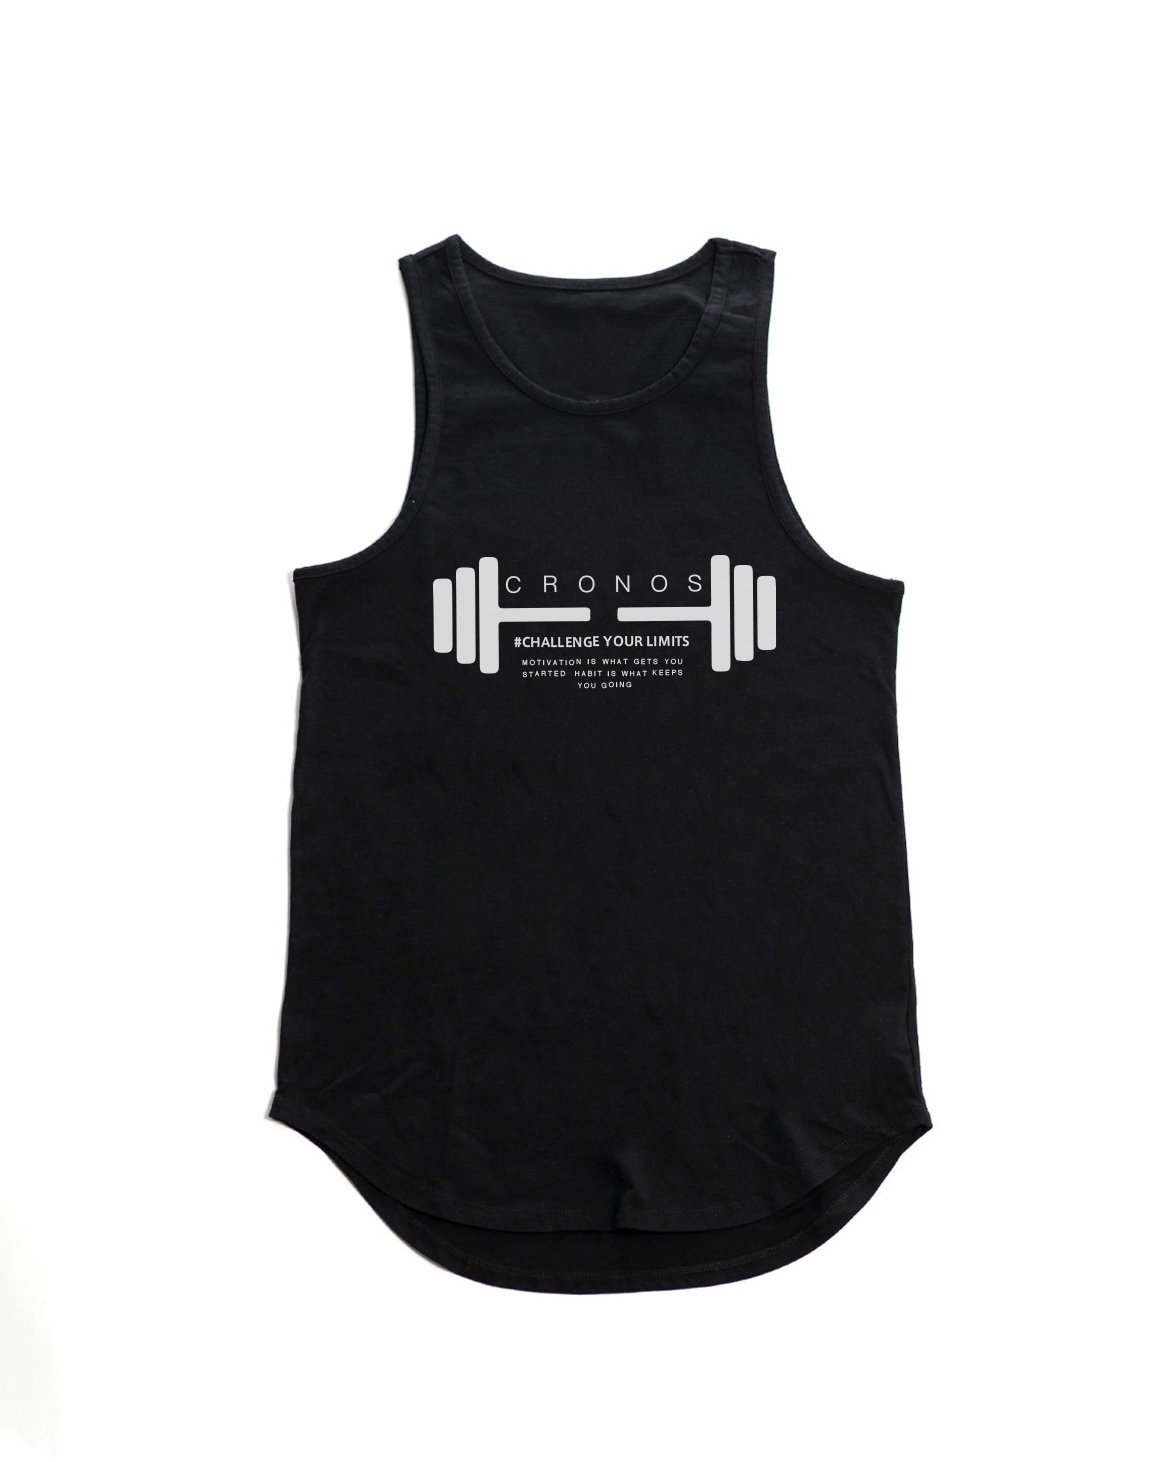 <img class='new_mark_img1' src='https://img.shop-pro.jp/img/new/icons1.gif' style='border:none;display:inline;margin:0px;padding:0px;width:auto;' />CRONOS DUMBBELL LOGO TANK TOP【BLACK】